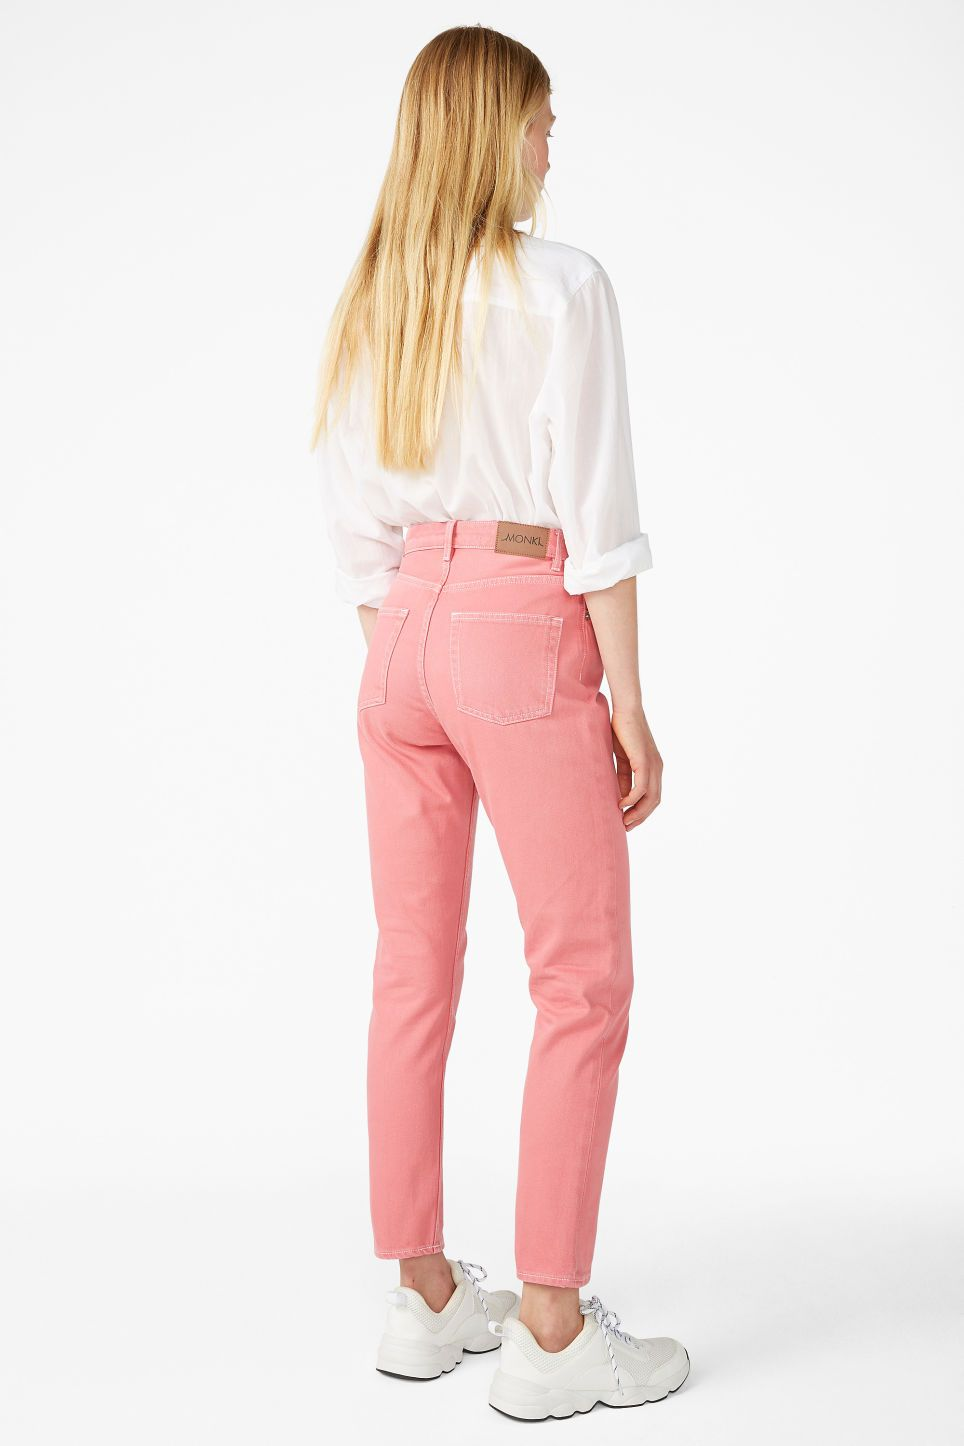 967c7804f9da Kimomo jeans in pink grapefruit - High-waisted and relaxed Kimomo jeans  with a slightly tapered leg, cropped to perfection.